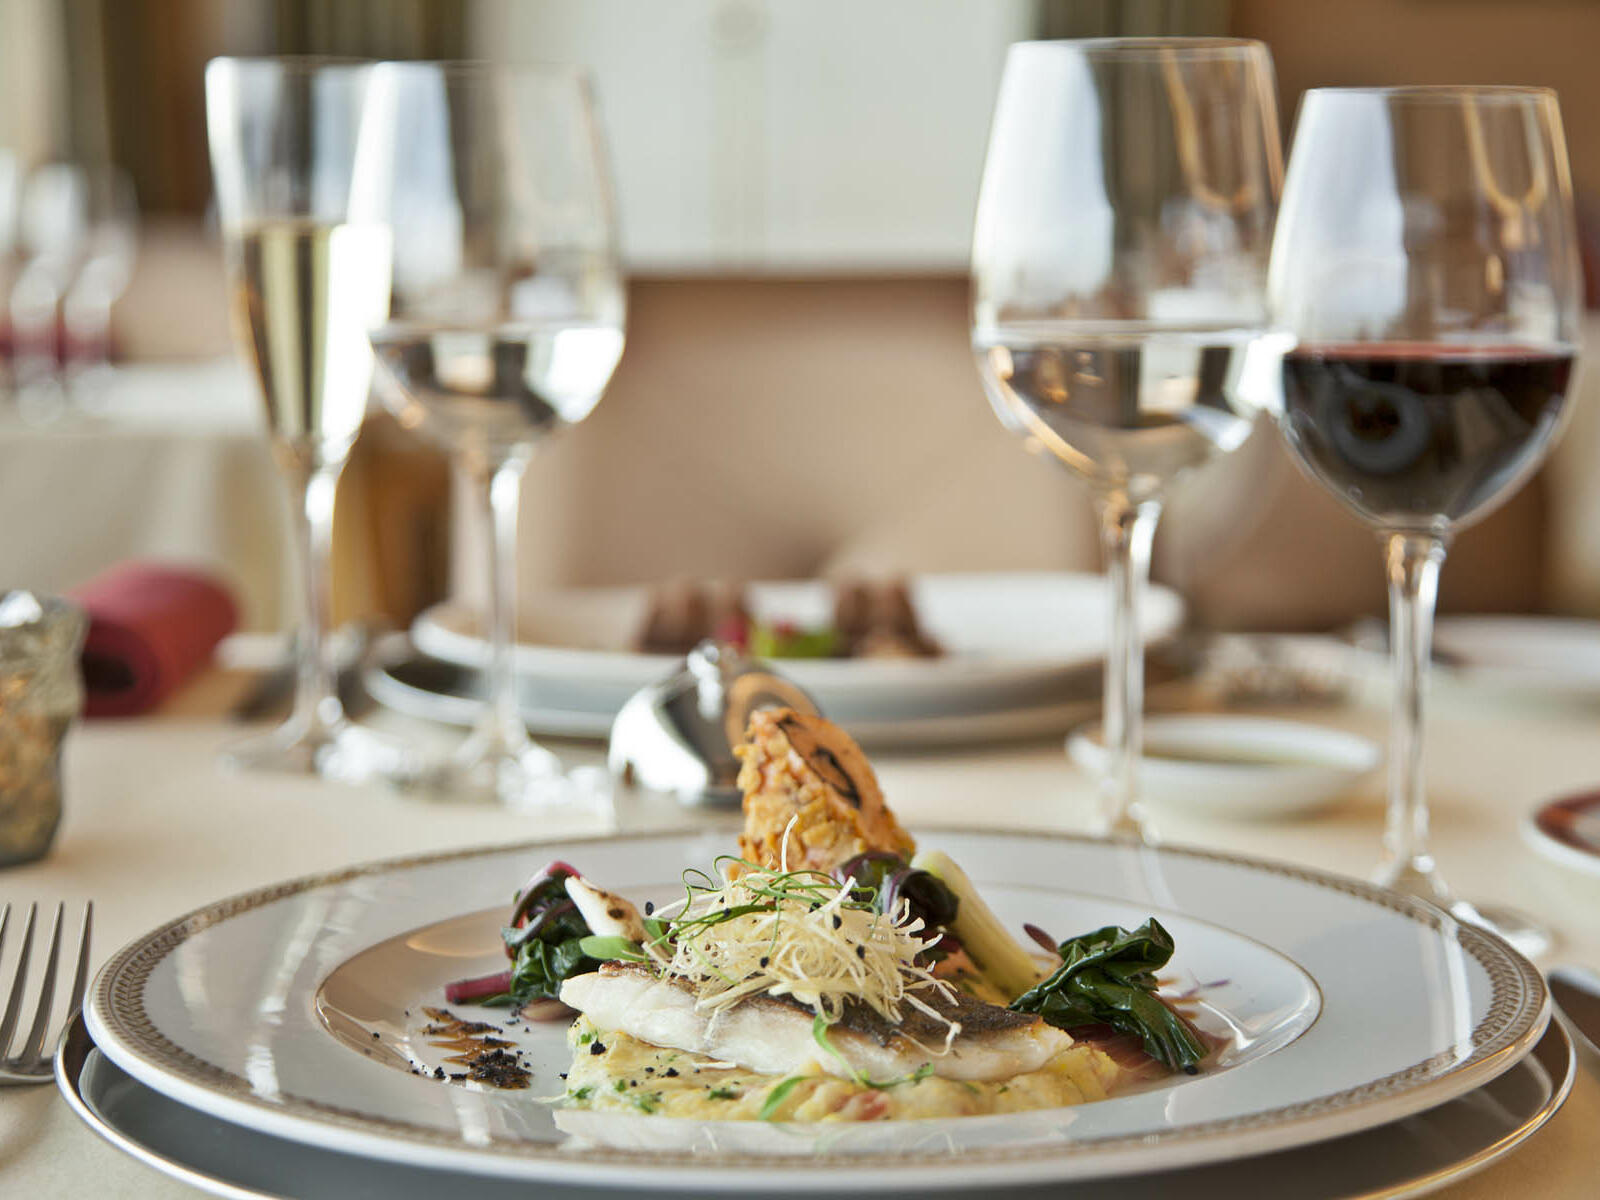 Tasty food with wine glasses kept on the table at Hotel Cascais Miragem Health & Spa